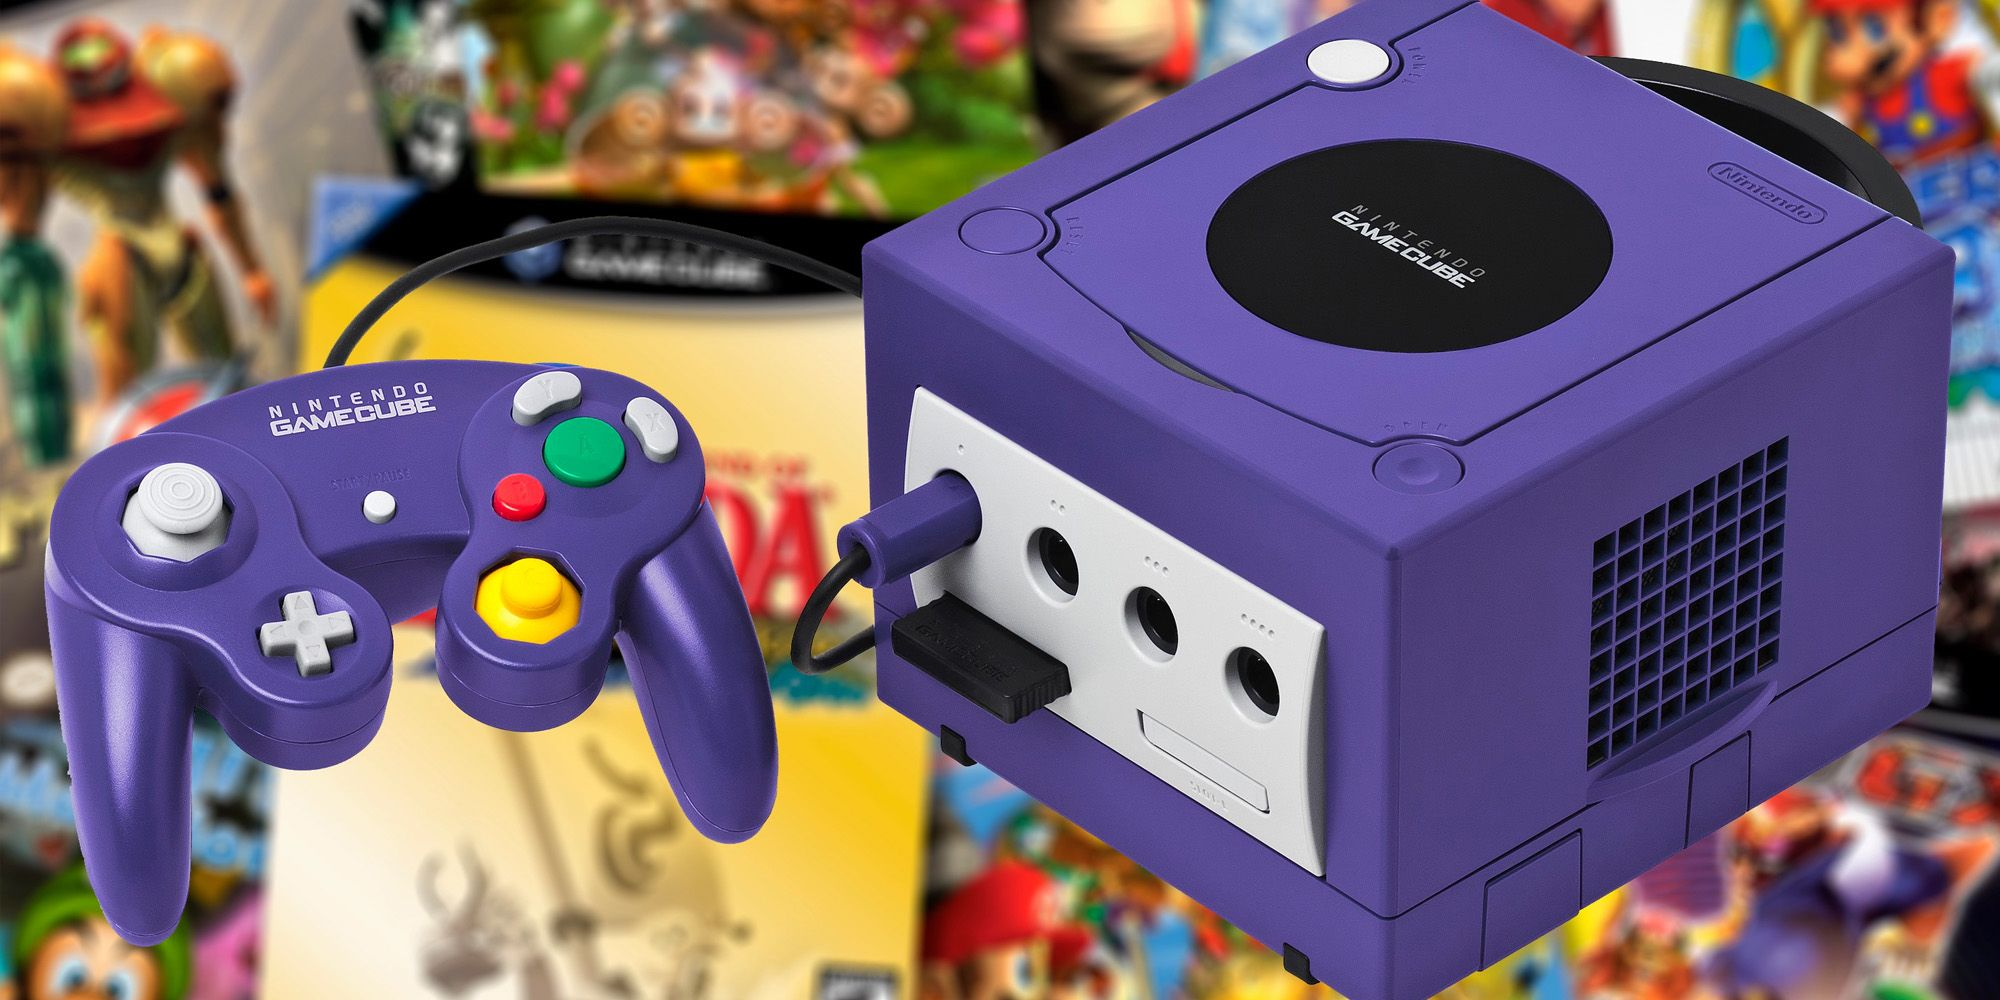 Nintendo GameCube Turns 20: A Look at the Under-Appreciated Powerhouse